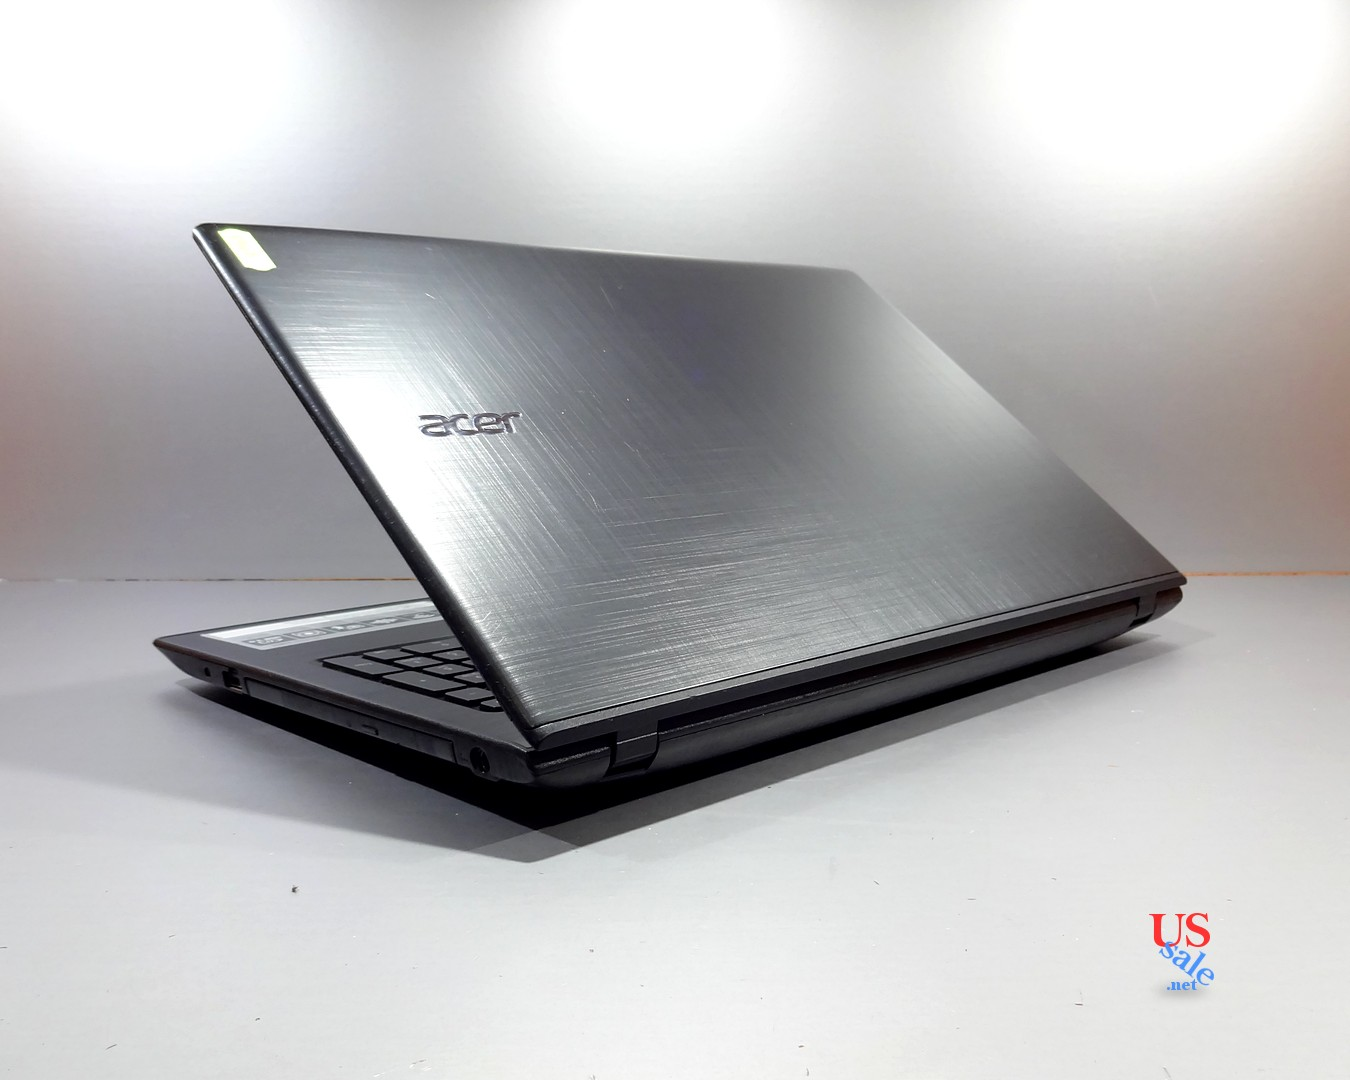 Toshiba-Satellite-C55-B5200-1300-real-1.jpg